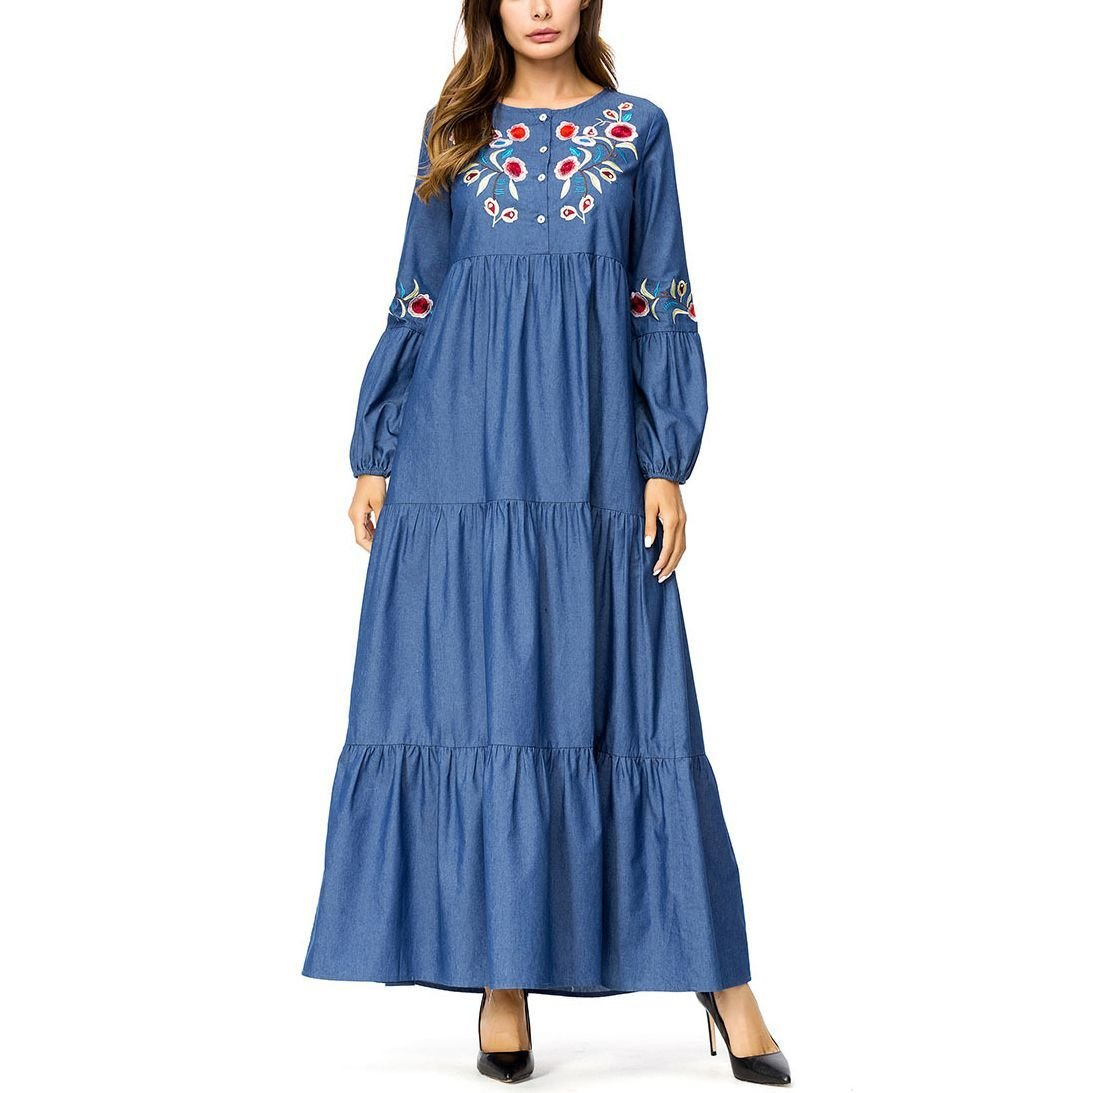 Embroidered Denim Casual Dress with Tiered Maxi Skirt